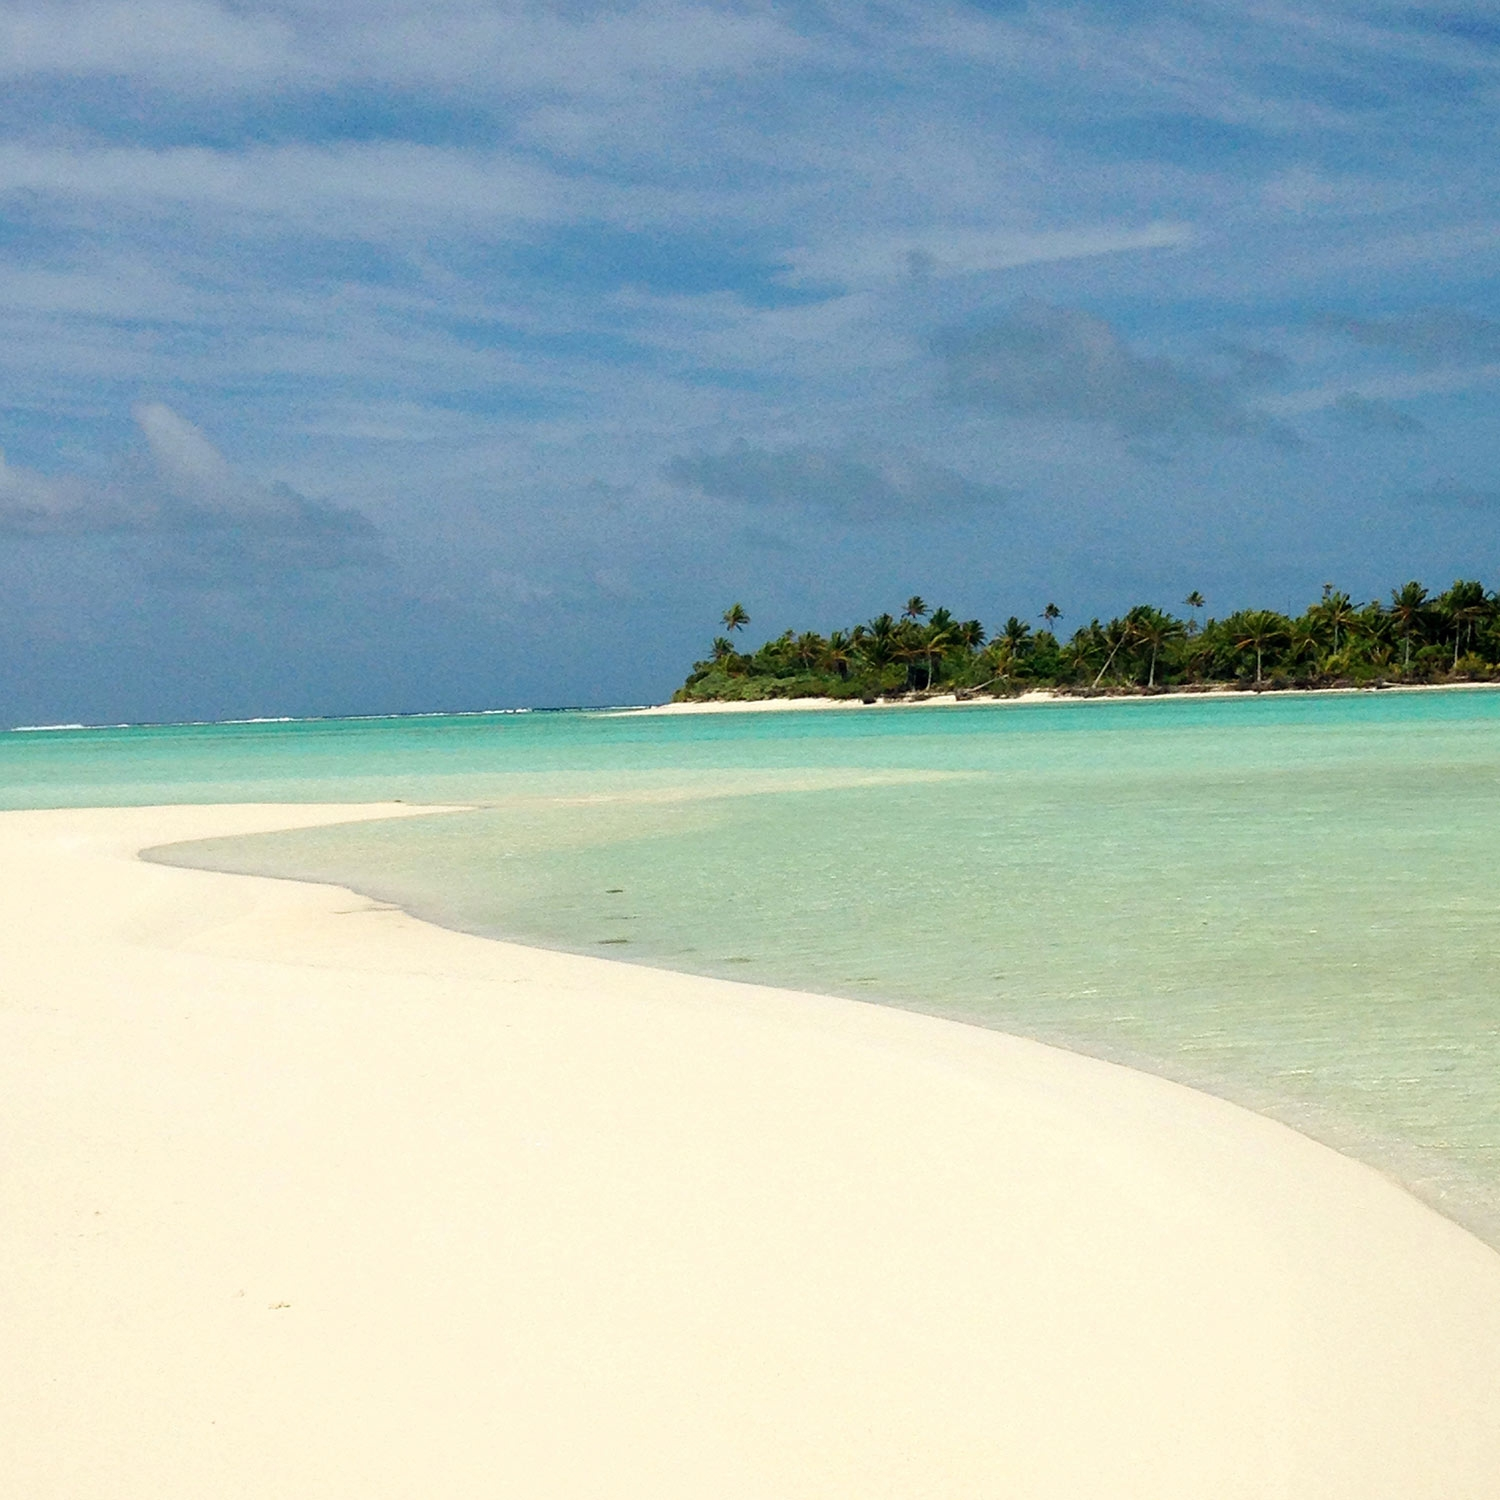 A cloudy day on the quiet beach of Aitutaki